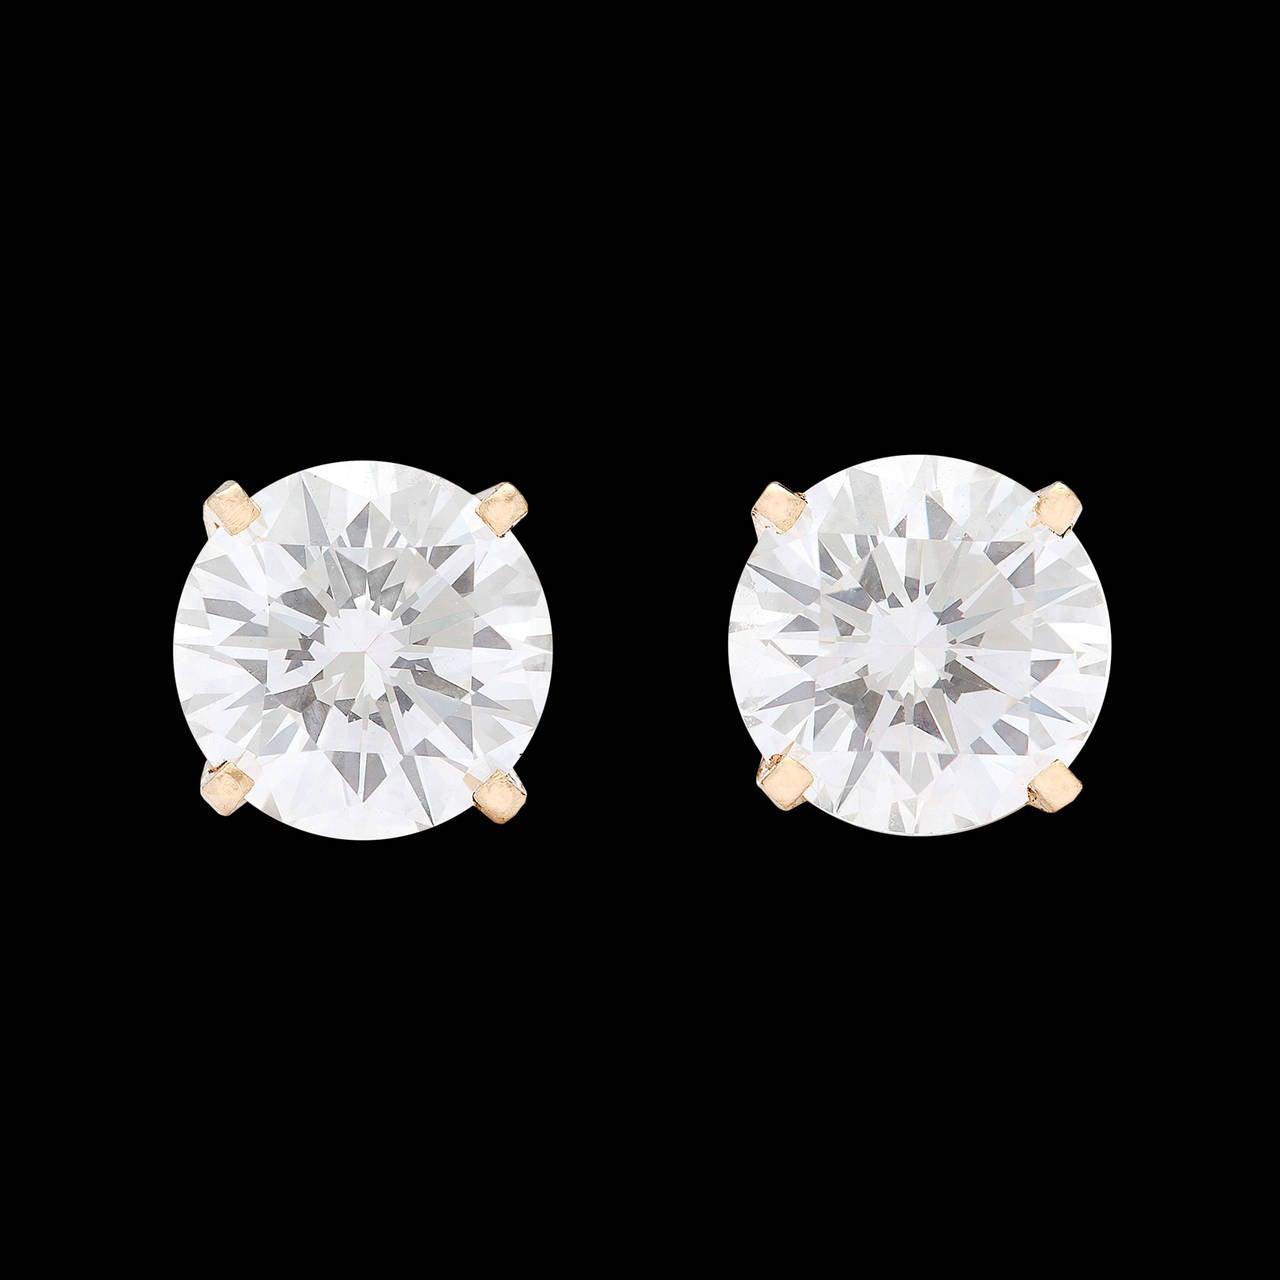 Classic Round Brilliant Cut Diamond Stud Earrings set in 18Kt Yellow Gold 4-Prong Basket Settings with Posts and Friction Back Closures. Each 1.02-ct diamond is accompanied by a GIA report and graded E color and VVS2 clarity. The total weight for